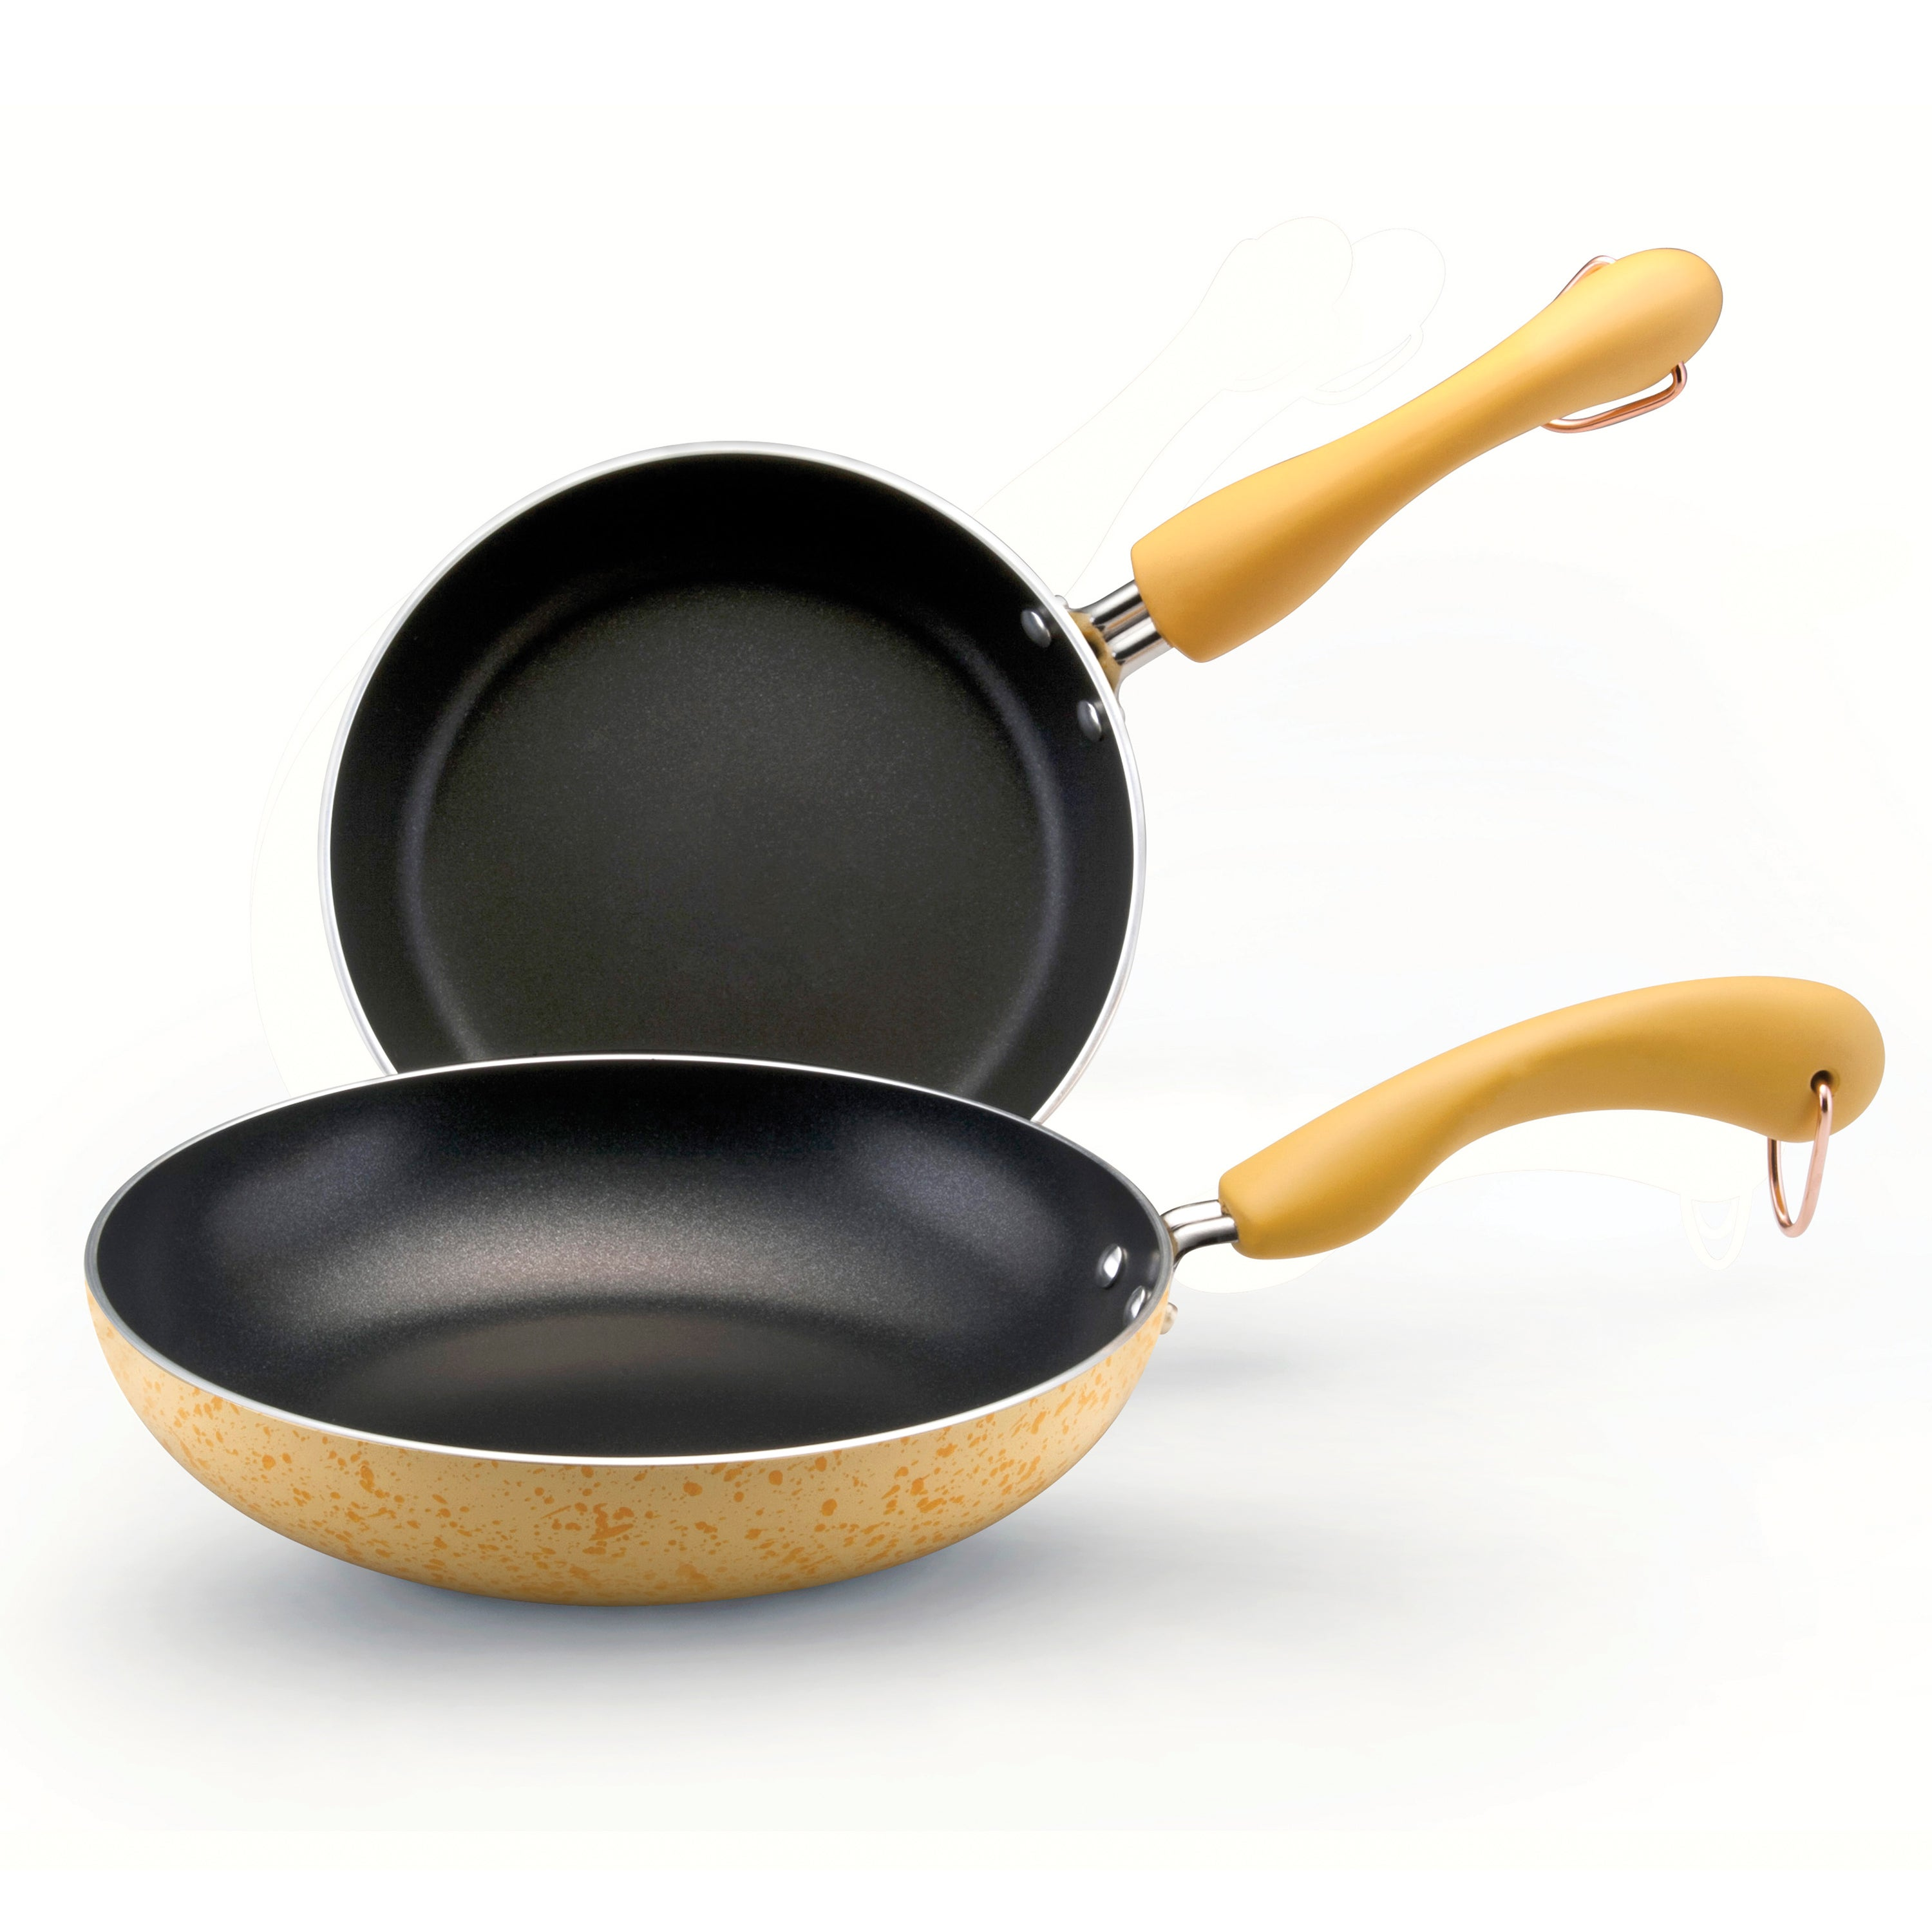 Paula Deen Signature Porcelain 'Butter' Open Skillet Set